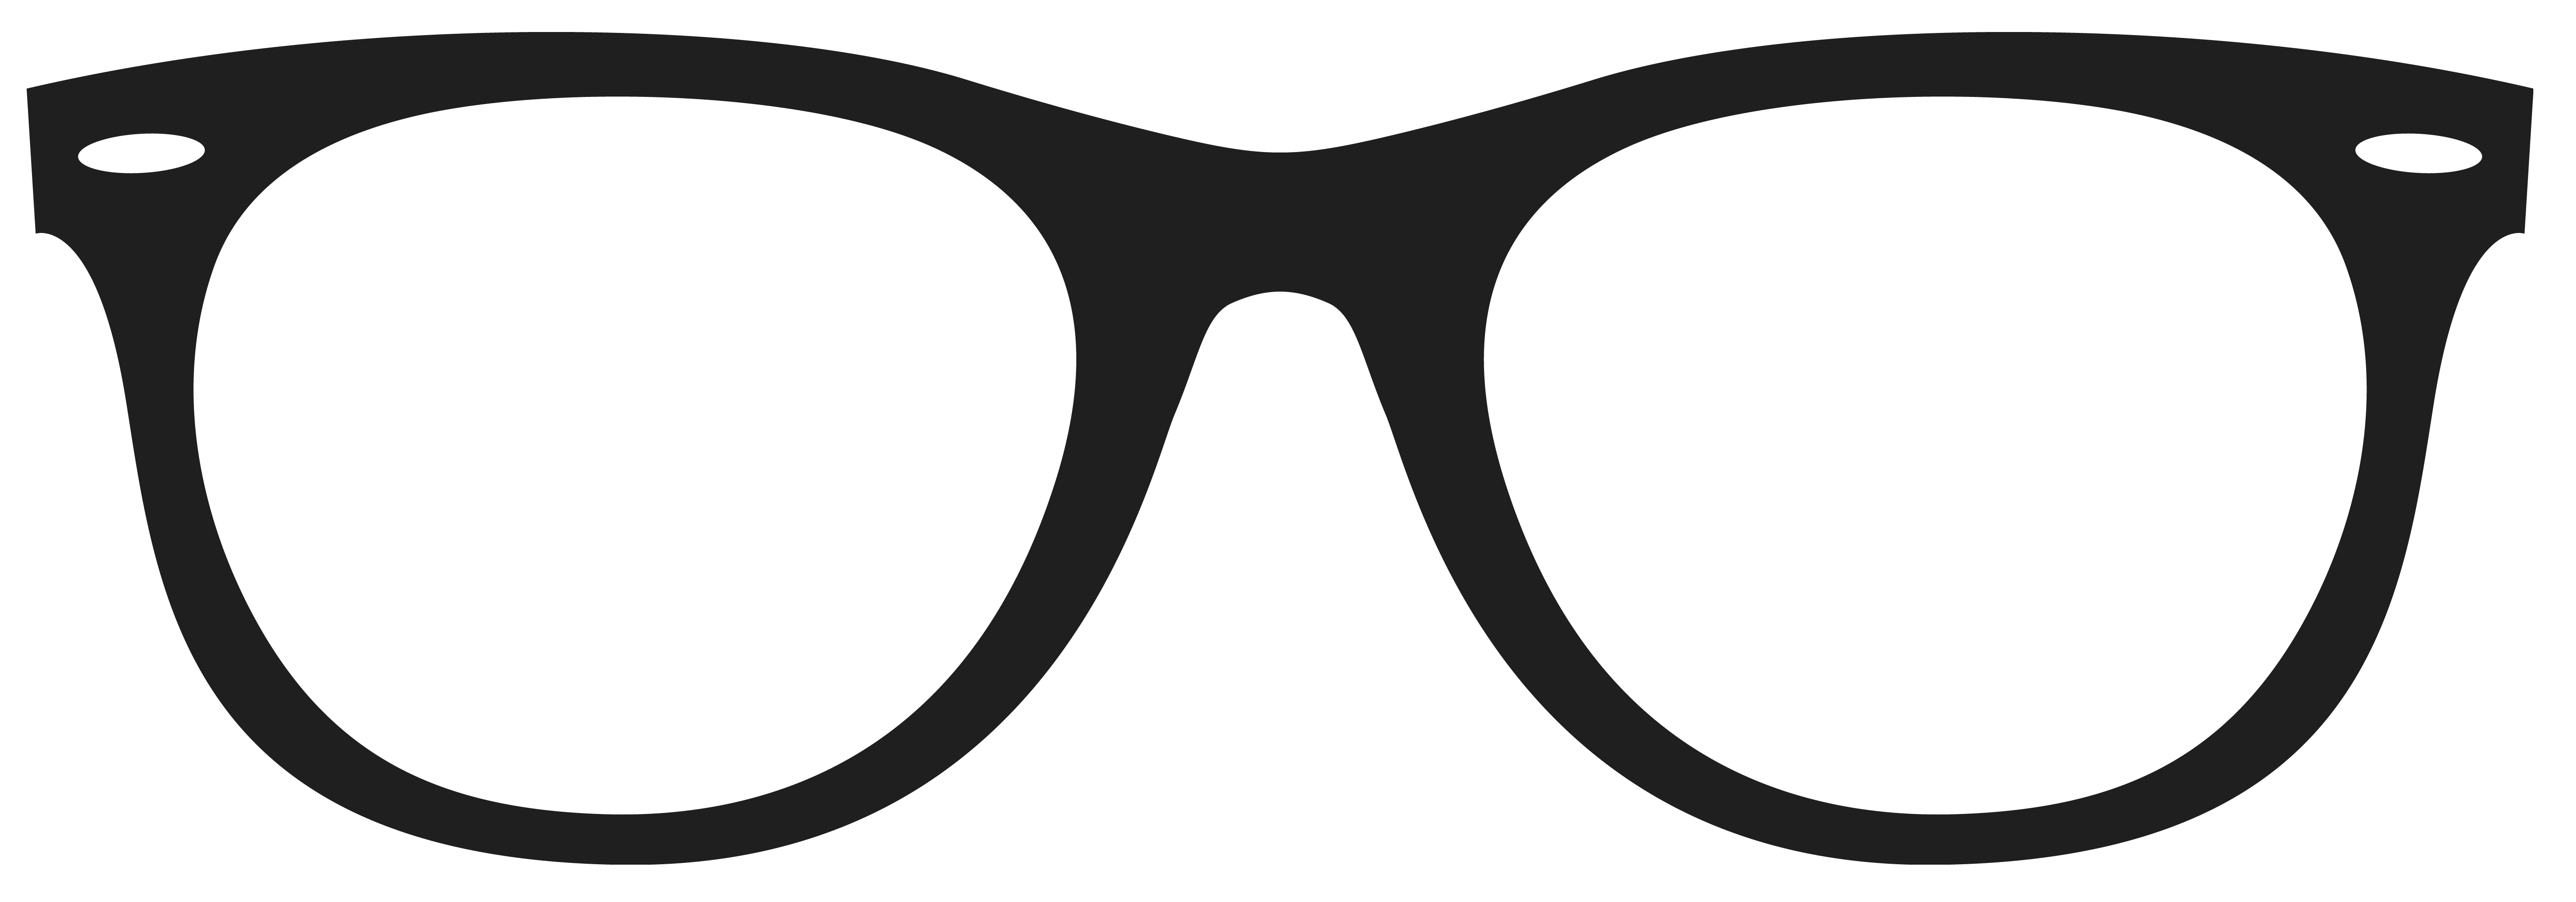 Glasses Png Hd PNG Image - Sunglasses HD PNG